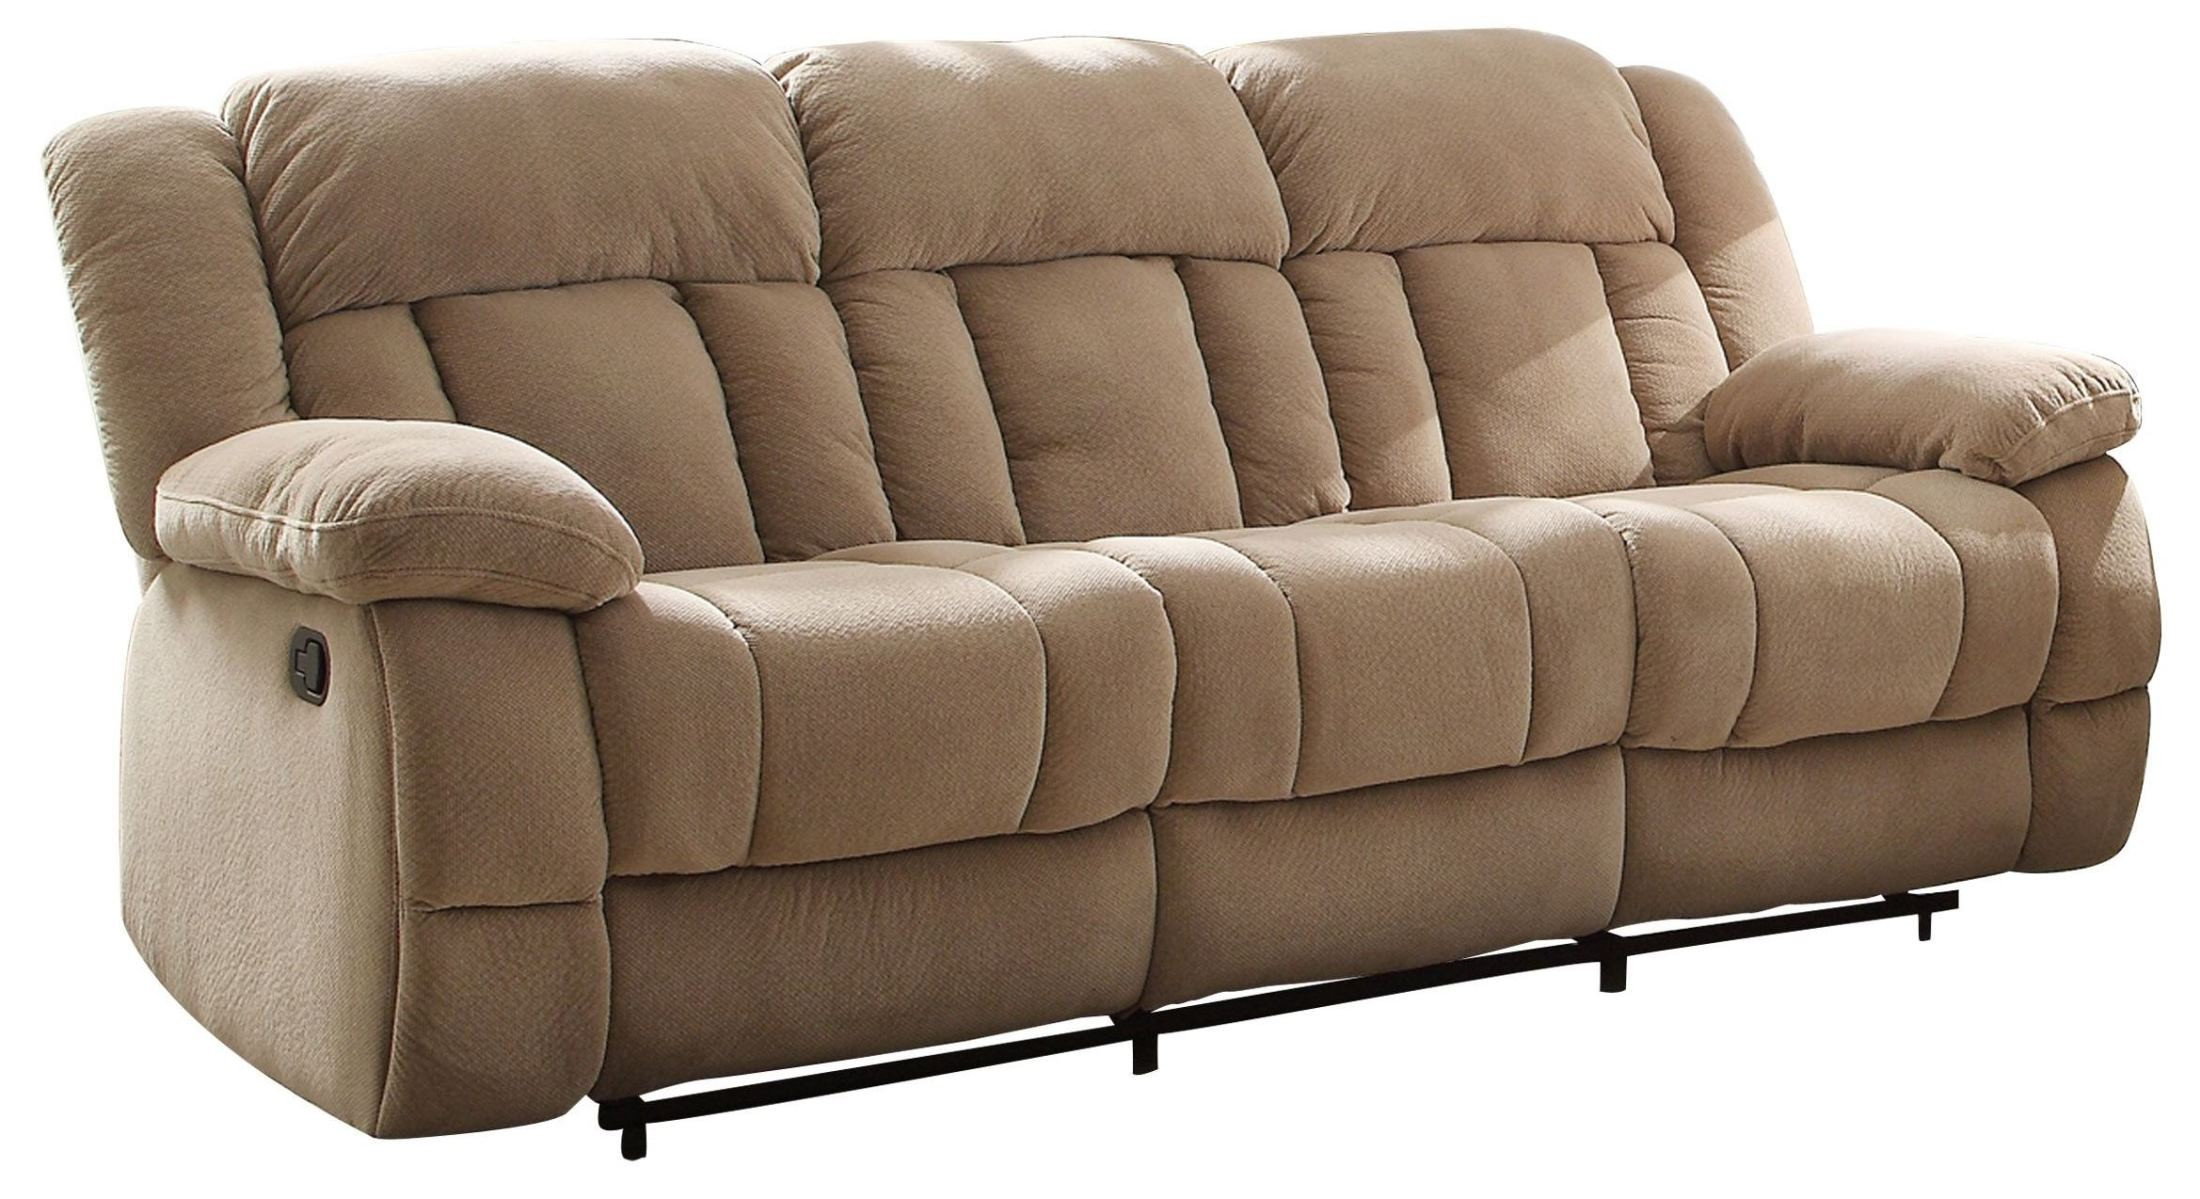 Laurelton Taupe Double Reclining Sofa From Homelegance